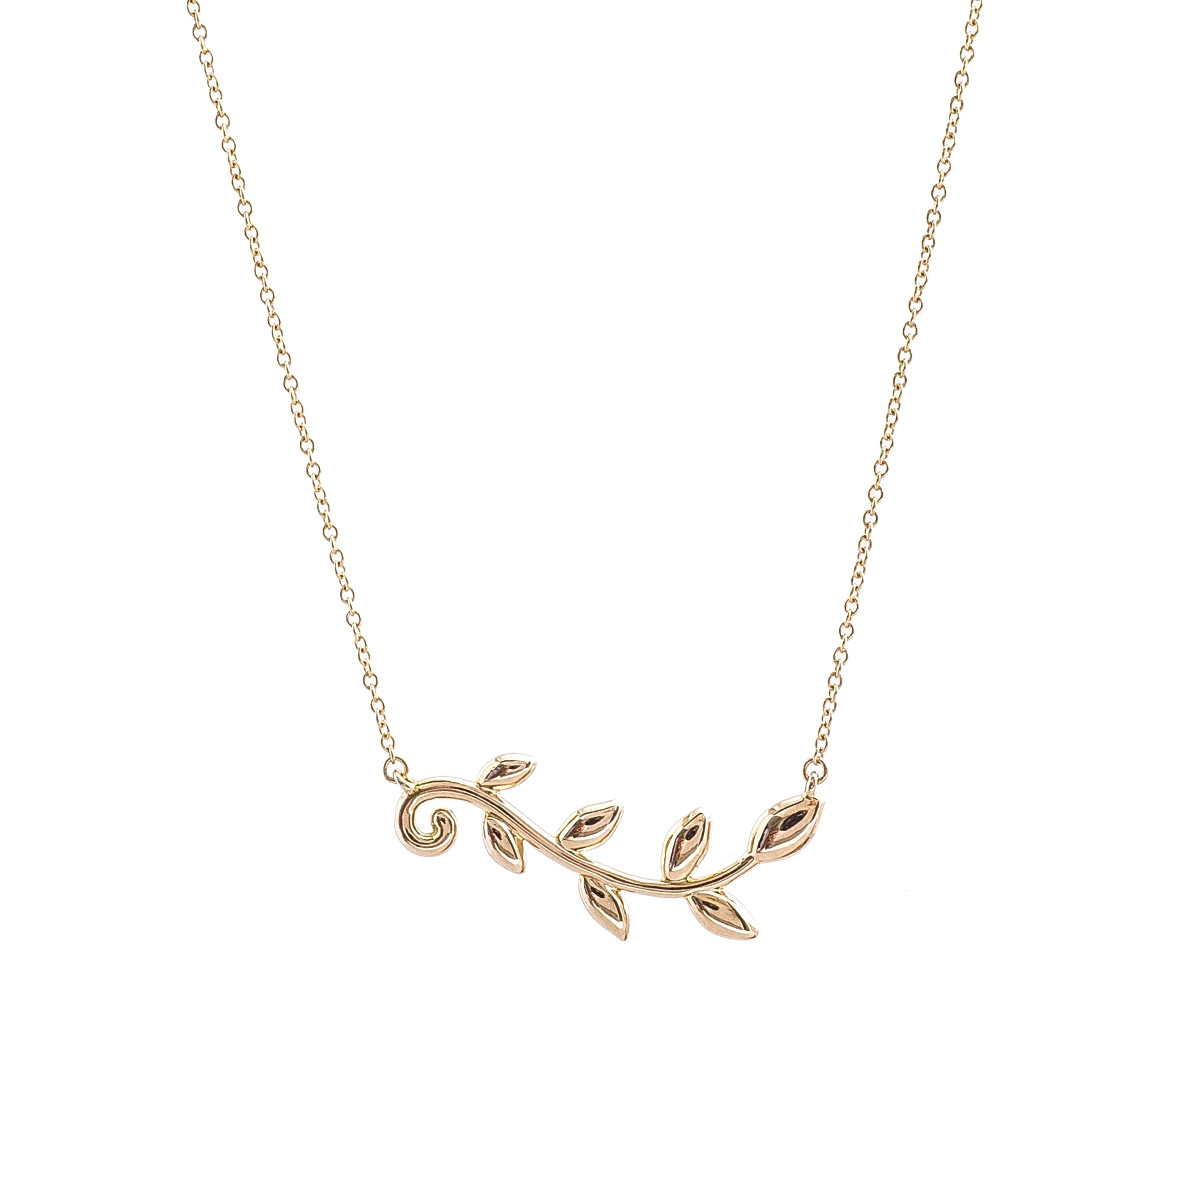 91ea34c35 Vintage Tiffany & Co. Paloma Picasso Olive Leaf Necklace Gallery Image